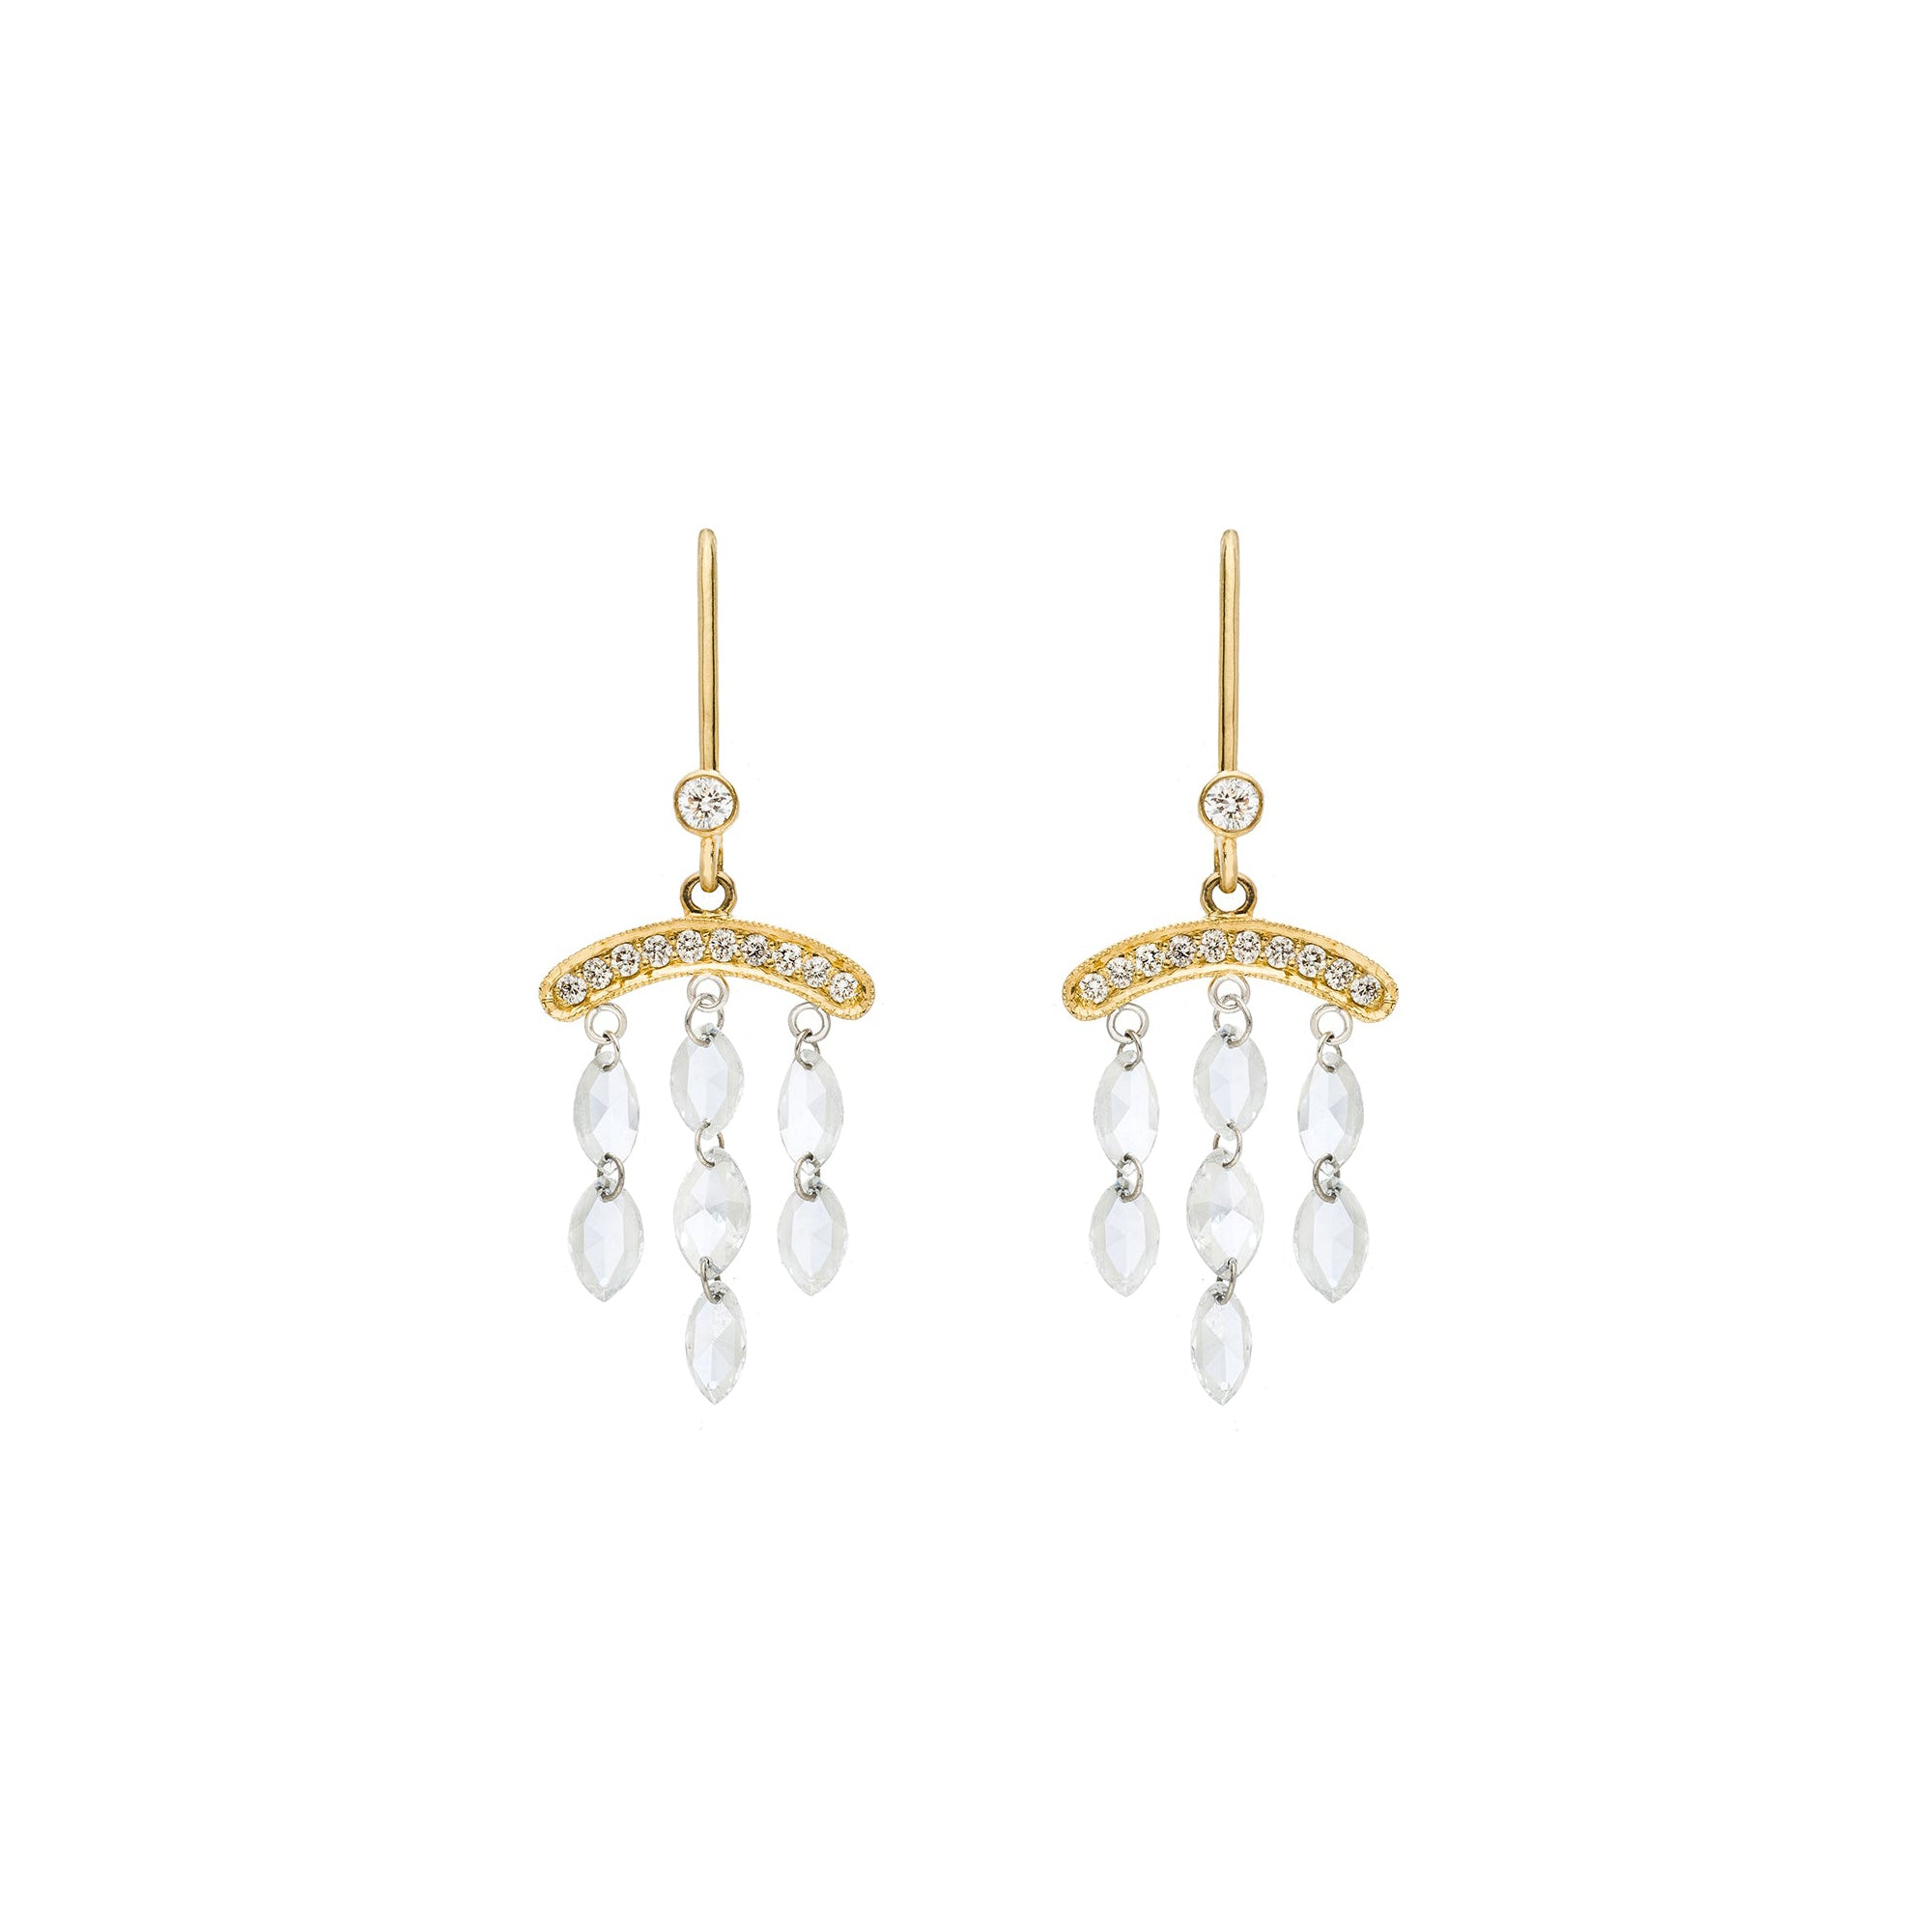 Sethi Couture The Cien Drop Earrings - Gold - Earrings - Broken English Jewelry